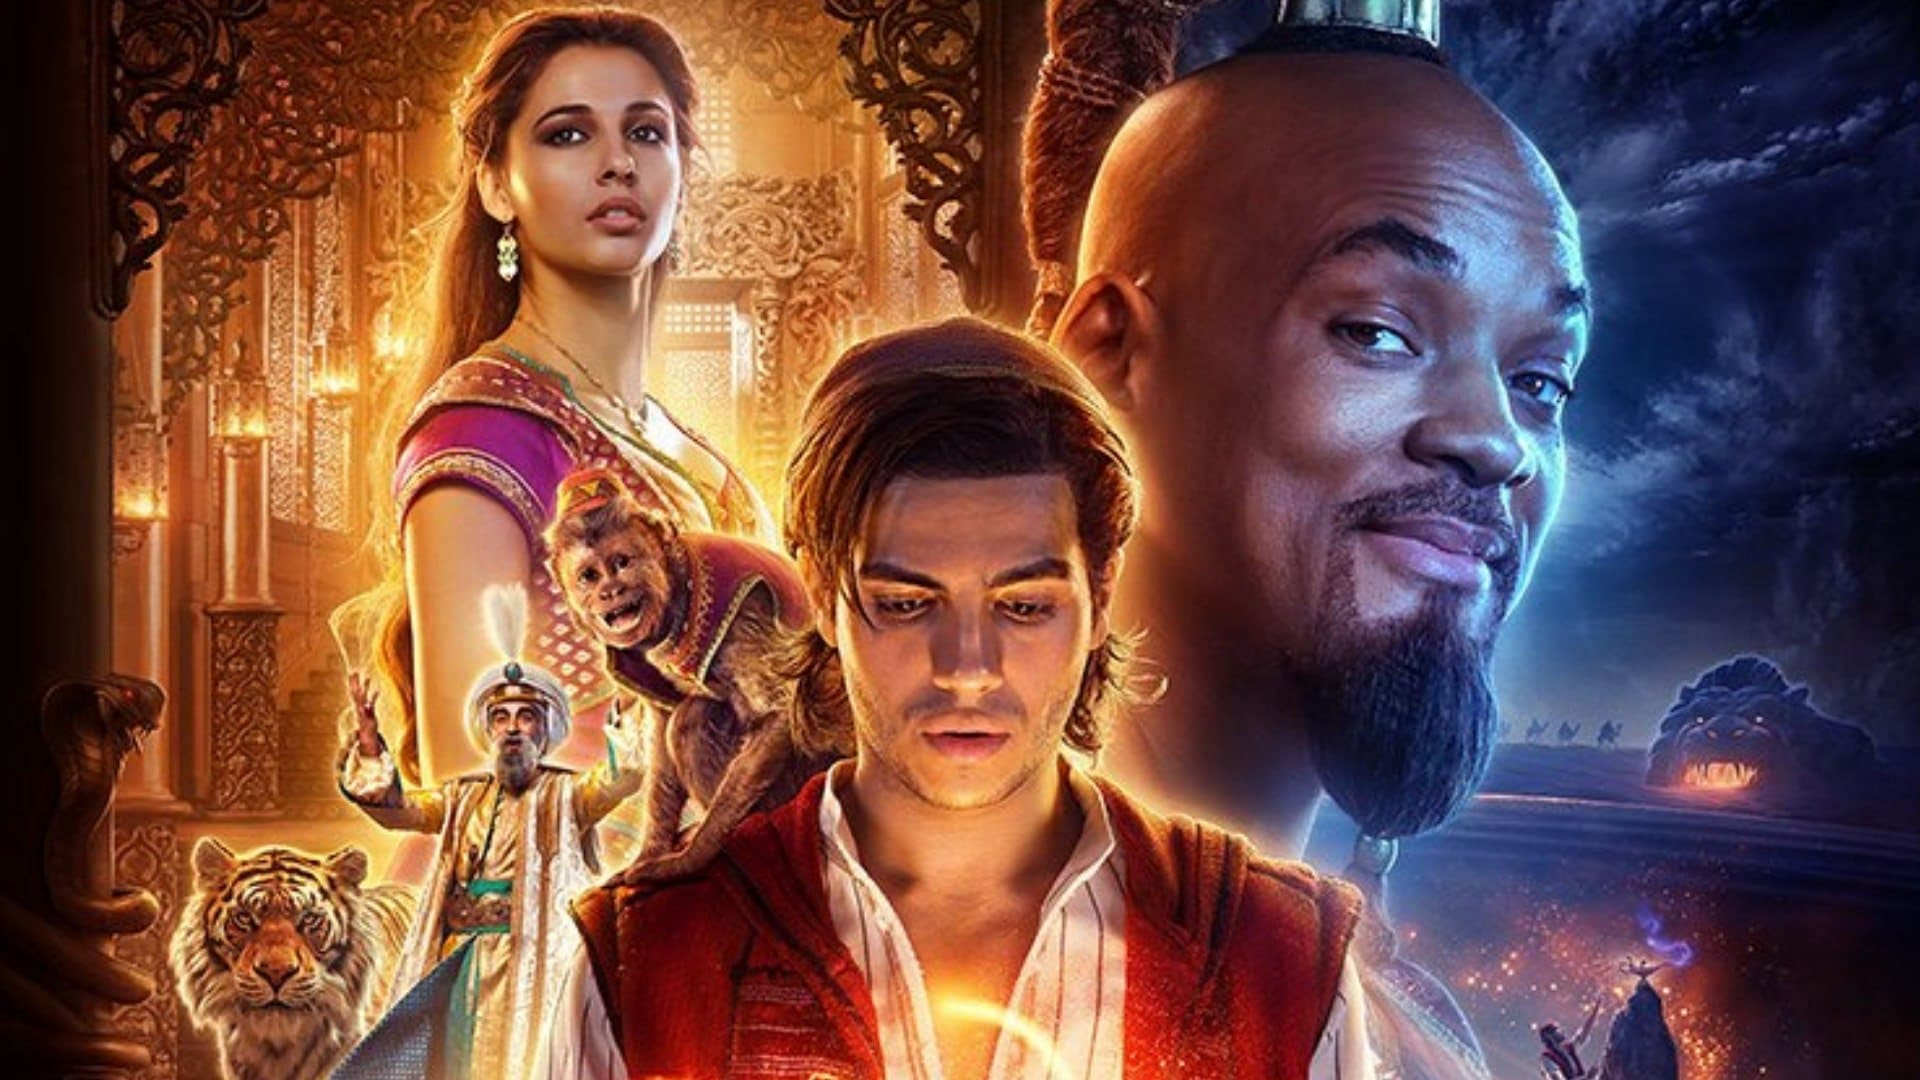 Disney's Already Developing Aladdin 2, Which Will Focus On Jafar's Return